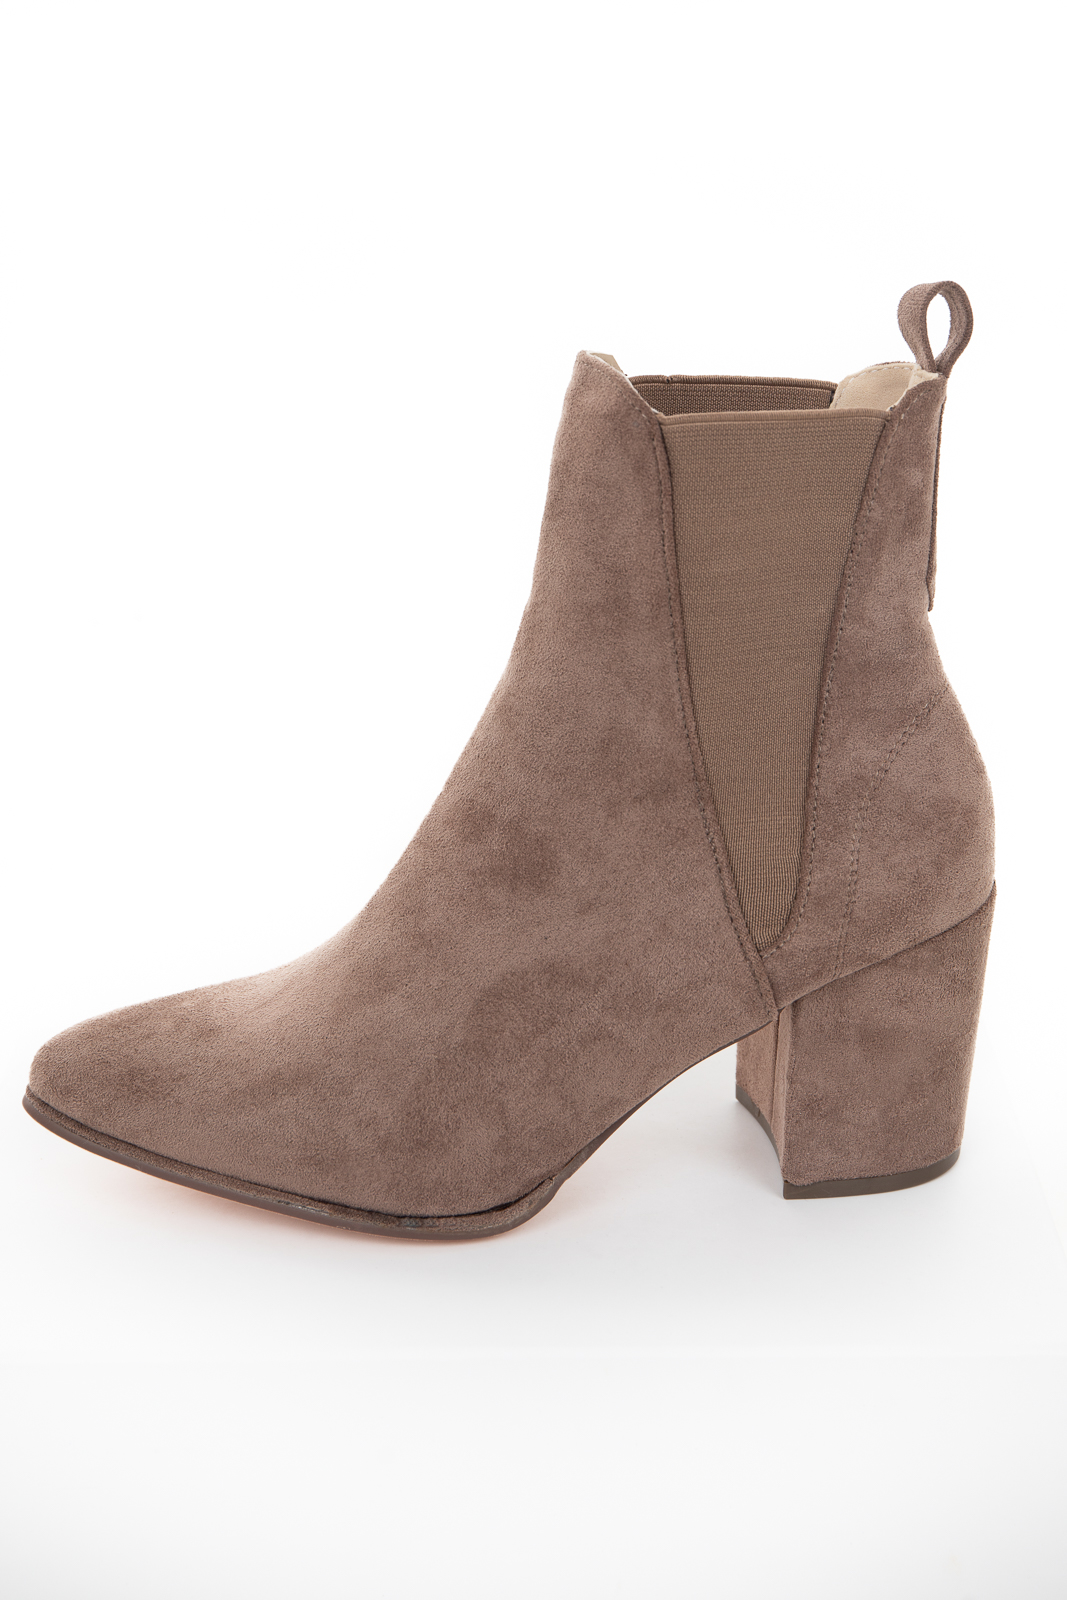 Taupe Faux Suede Elastic Pointed Toe Booties with Block Heel